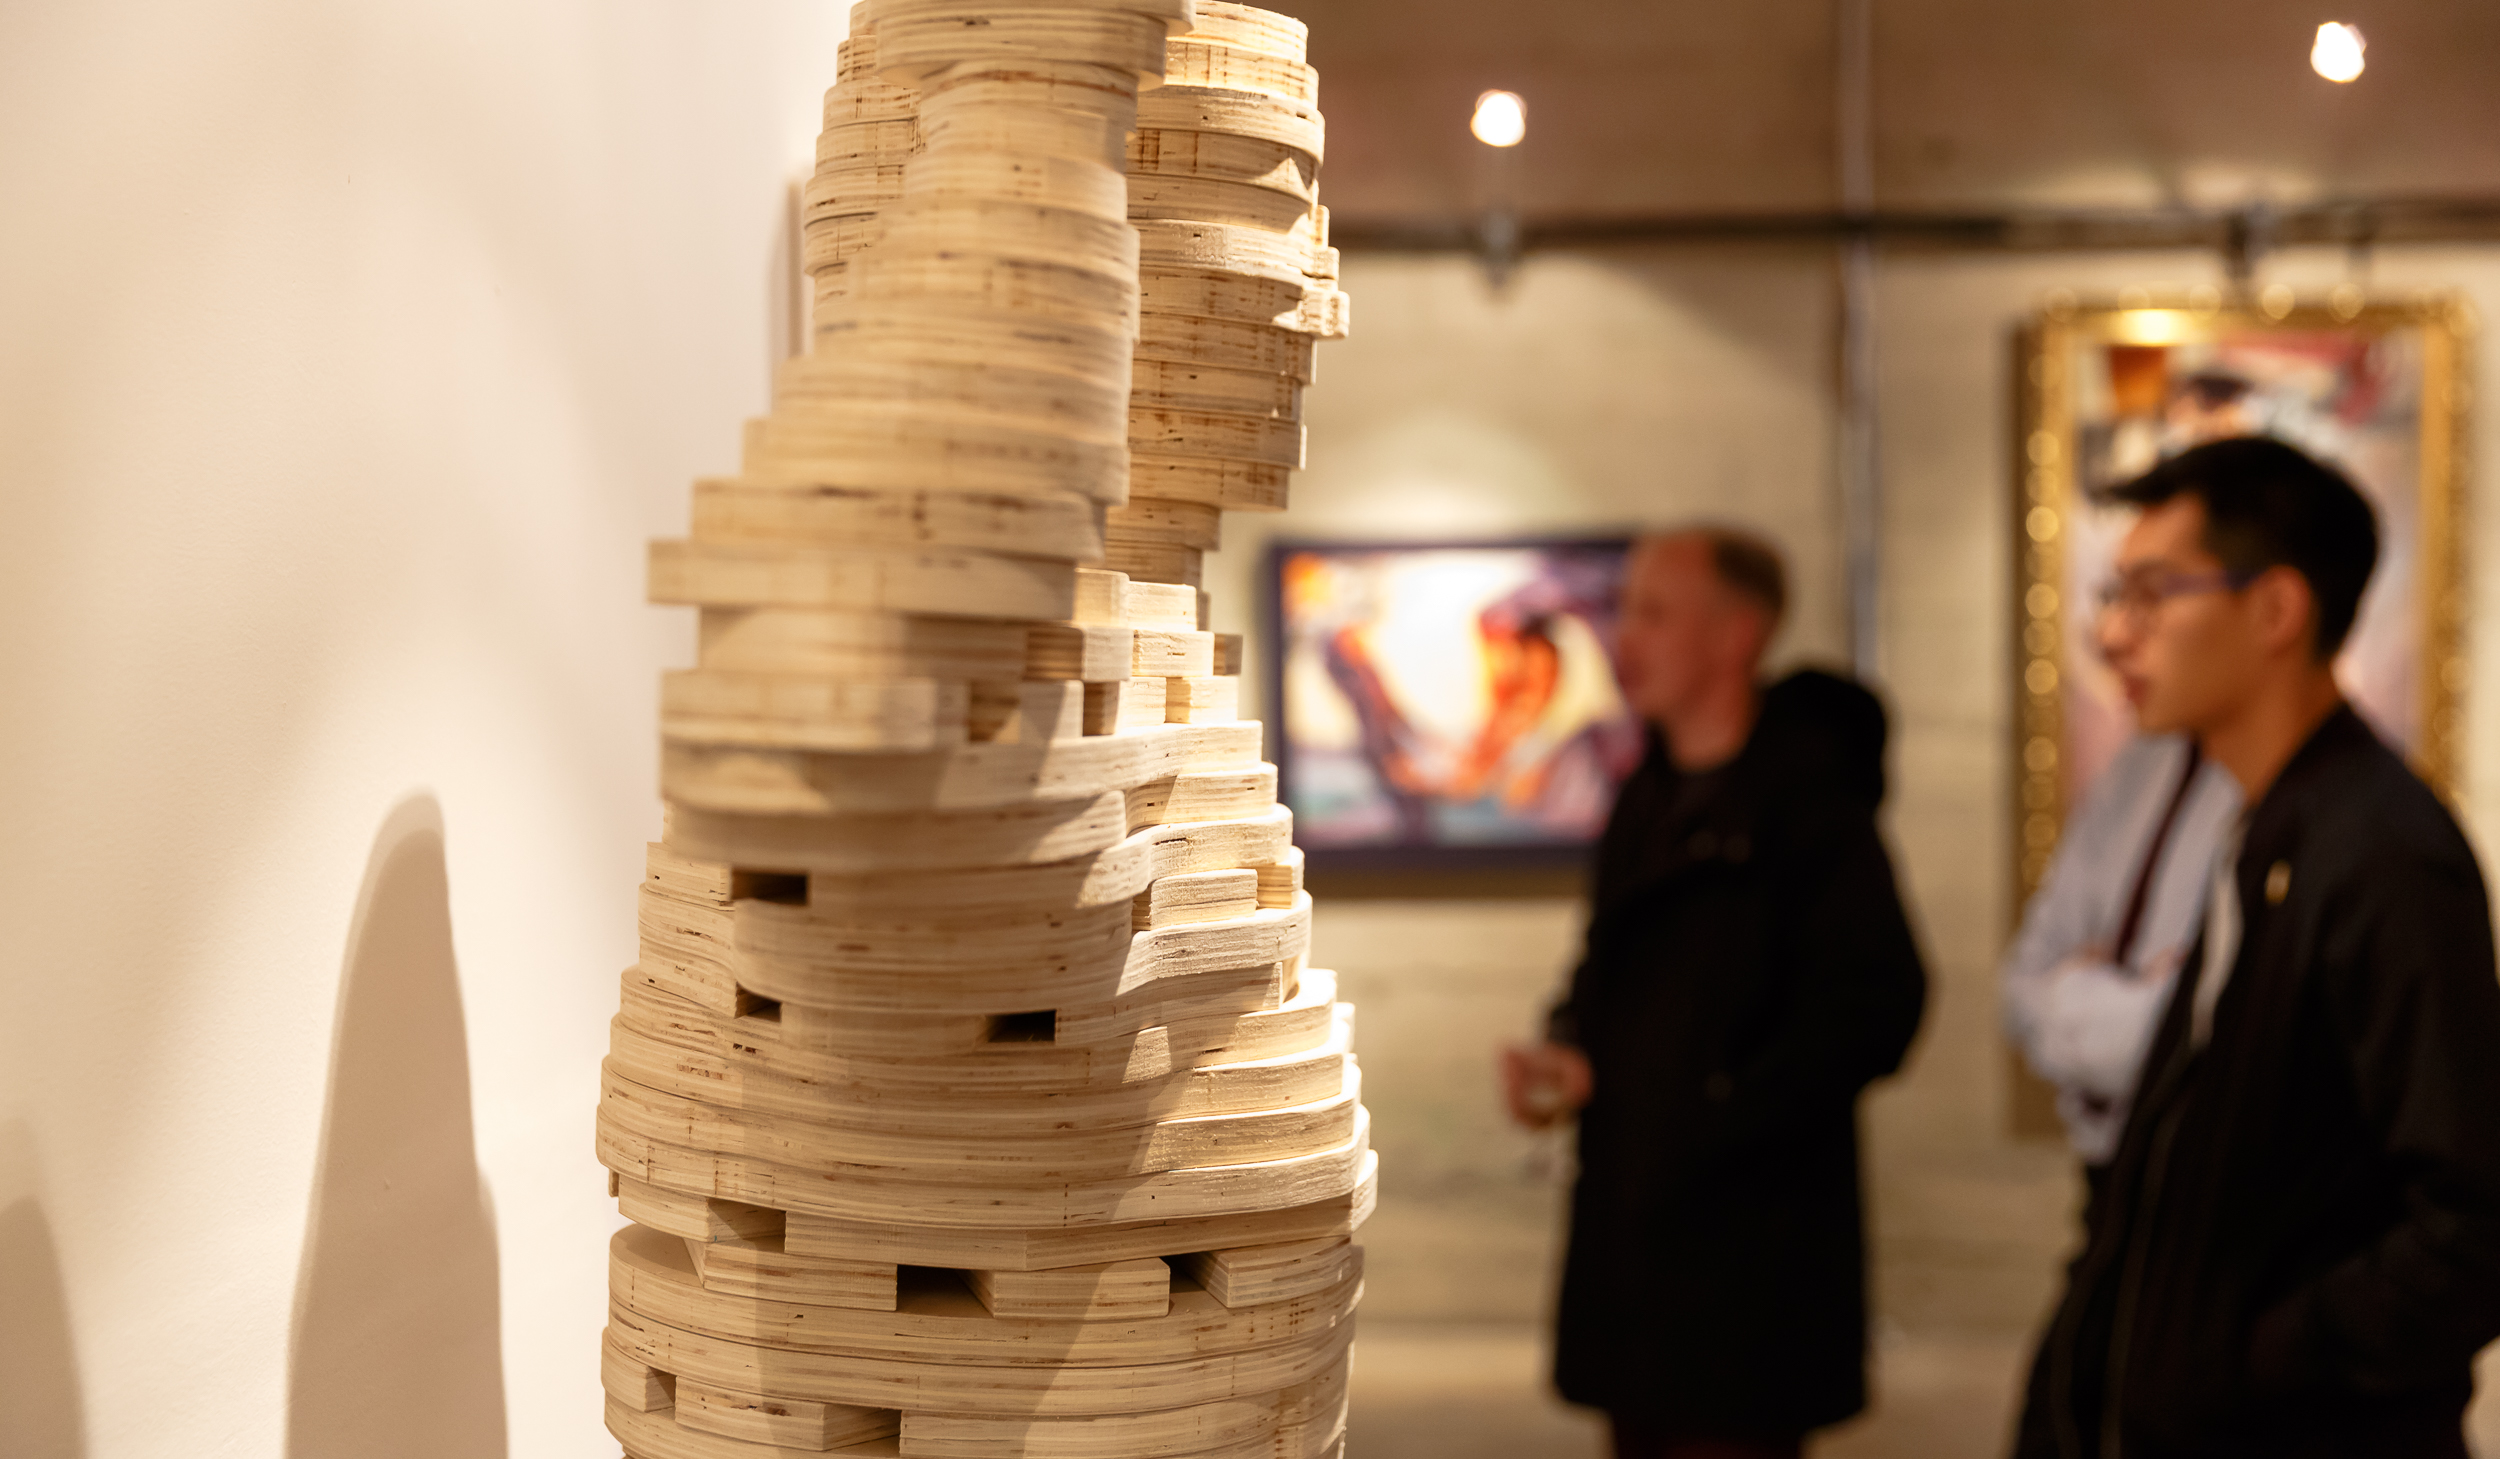 TED-Art-Vancouver-image22.jpg